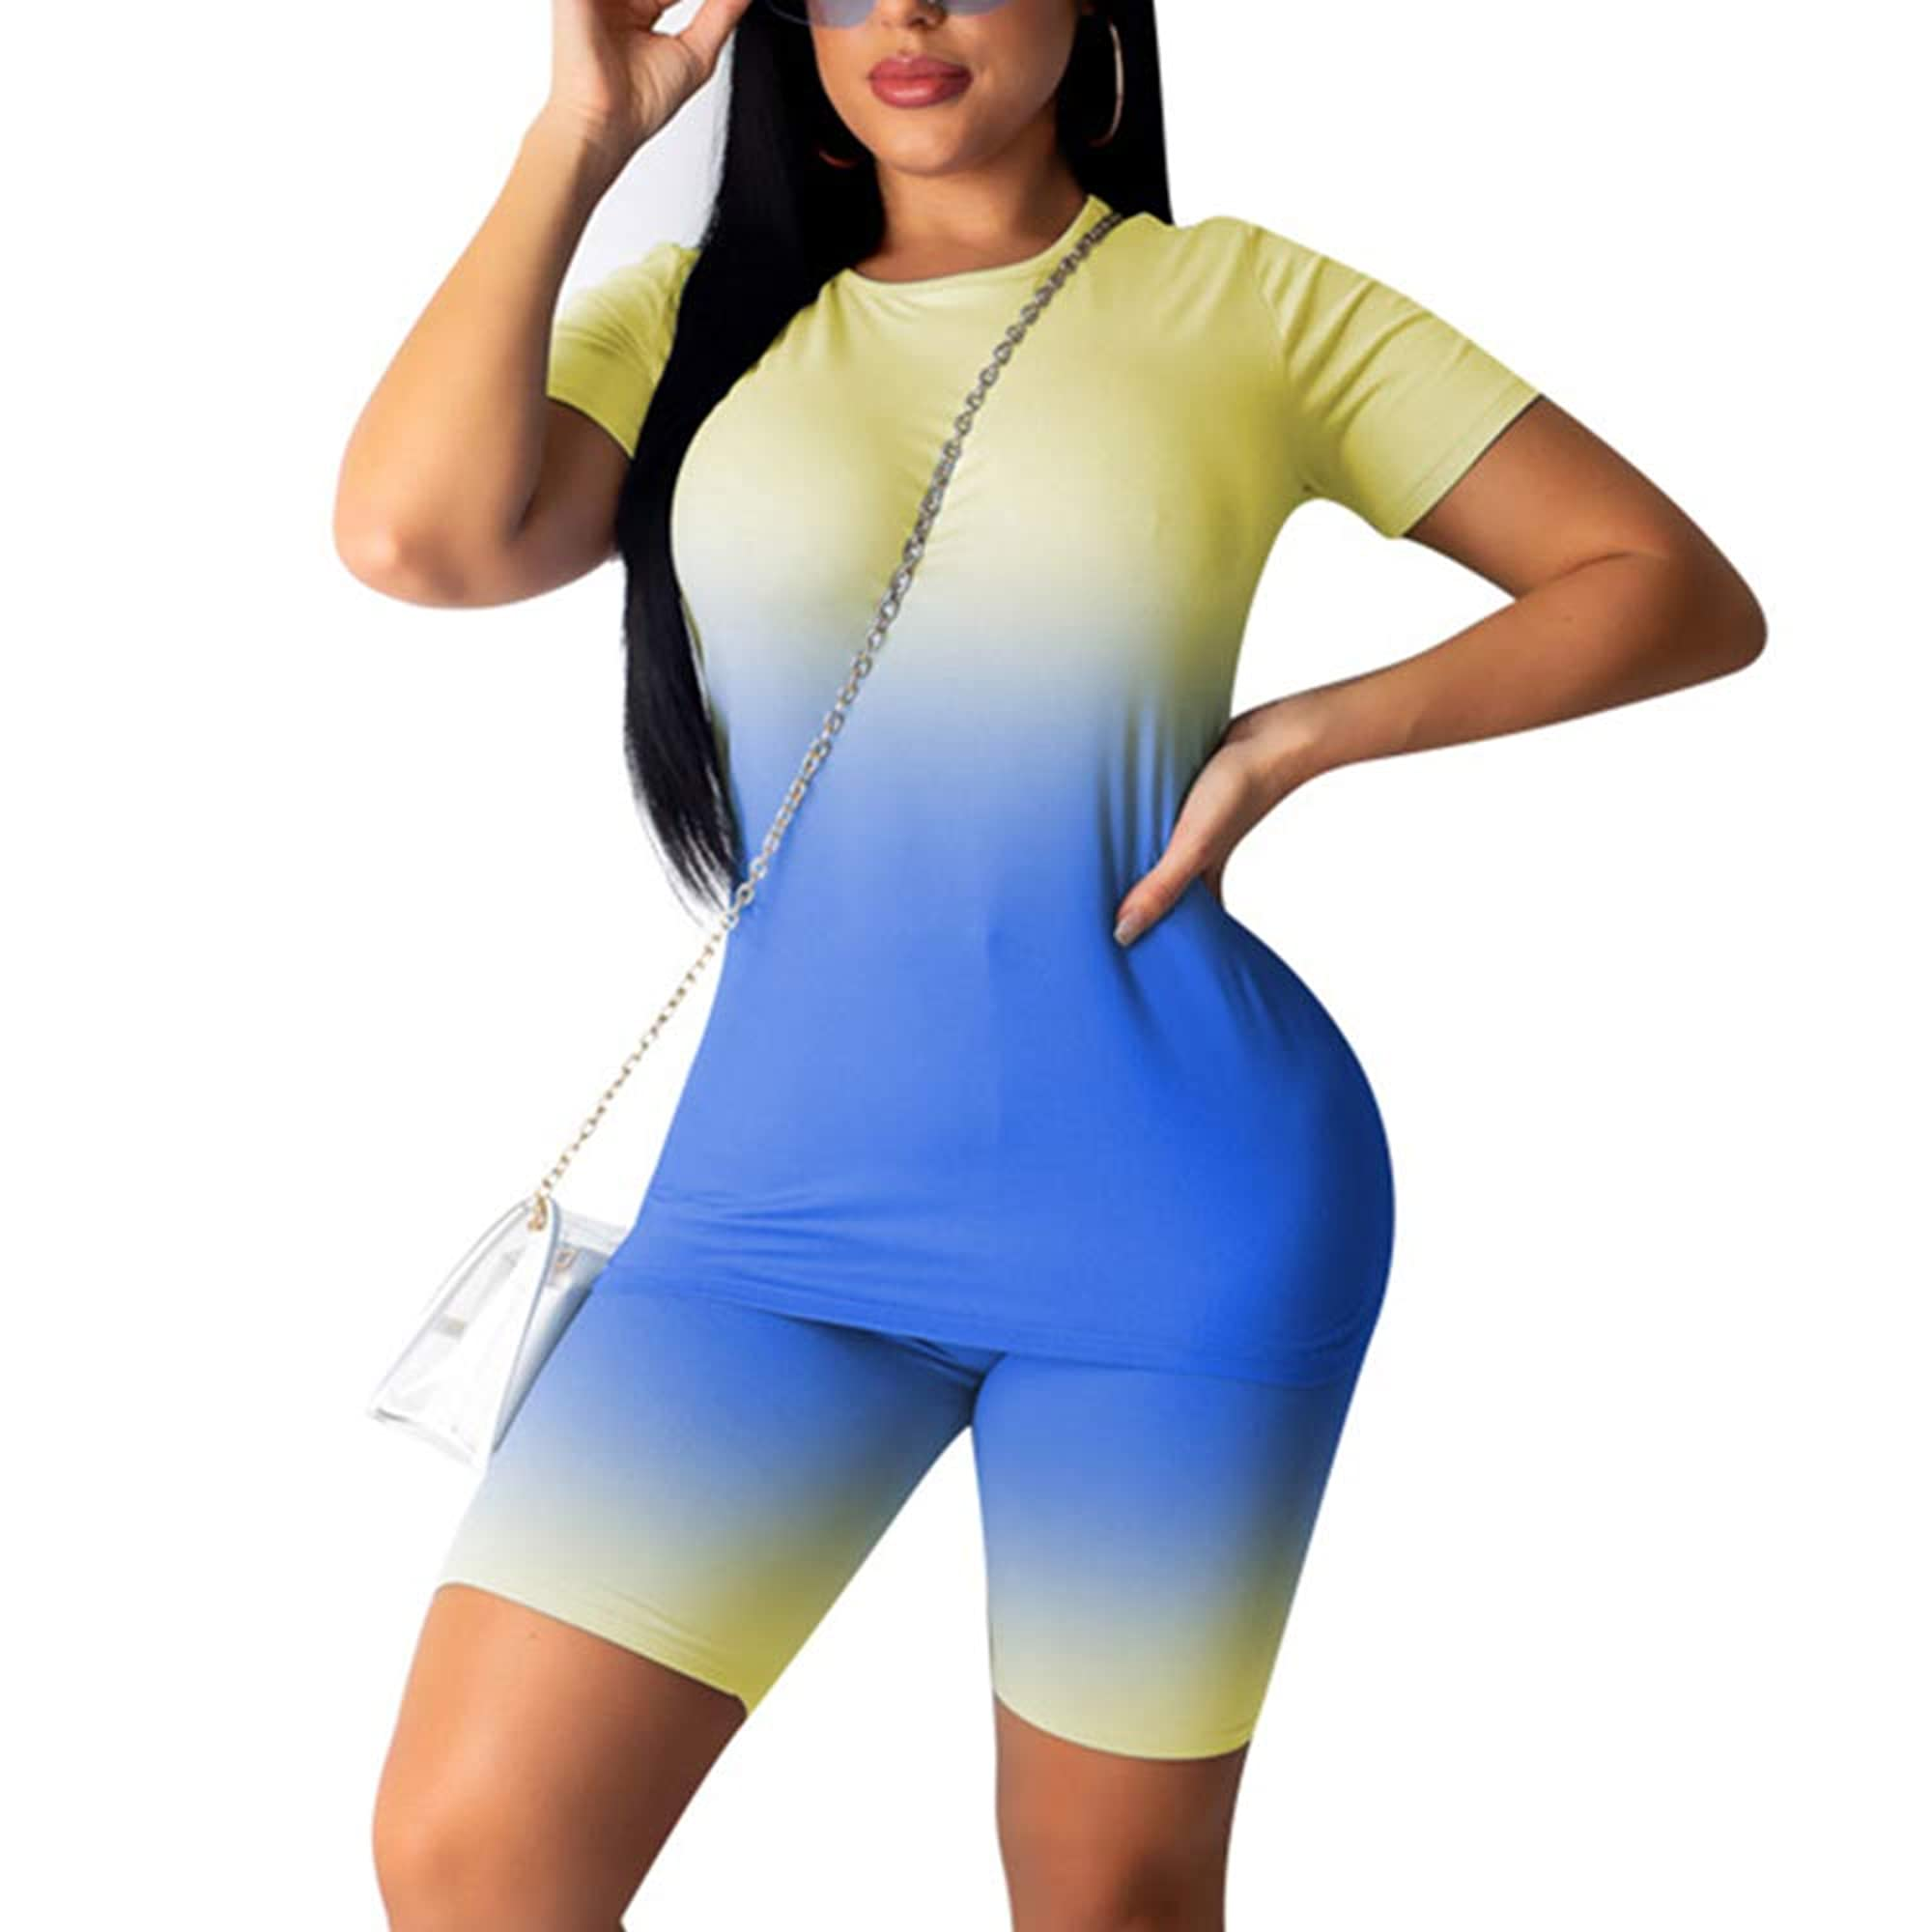 Women's Two-Piece Sports Outfit Tracksuit Short And T-Shirt